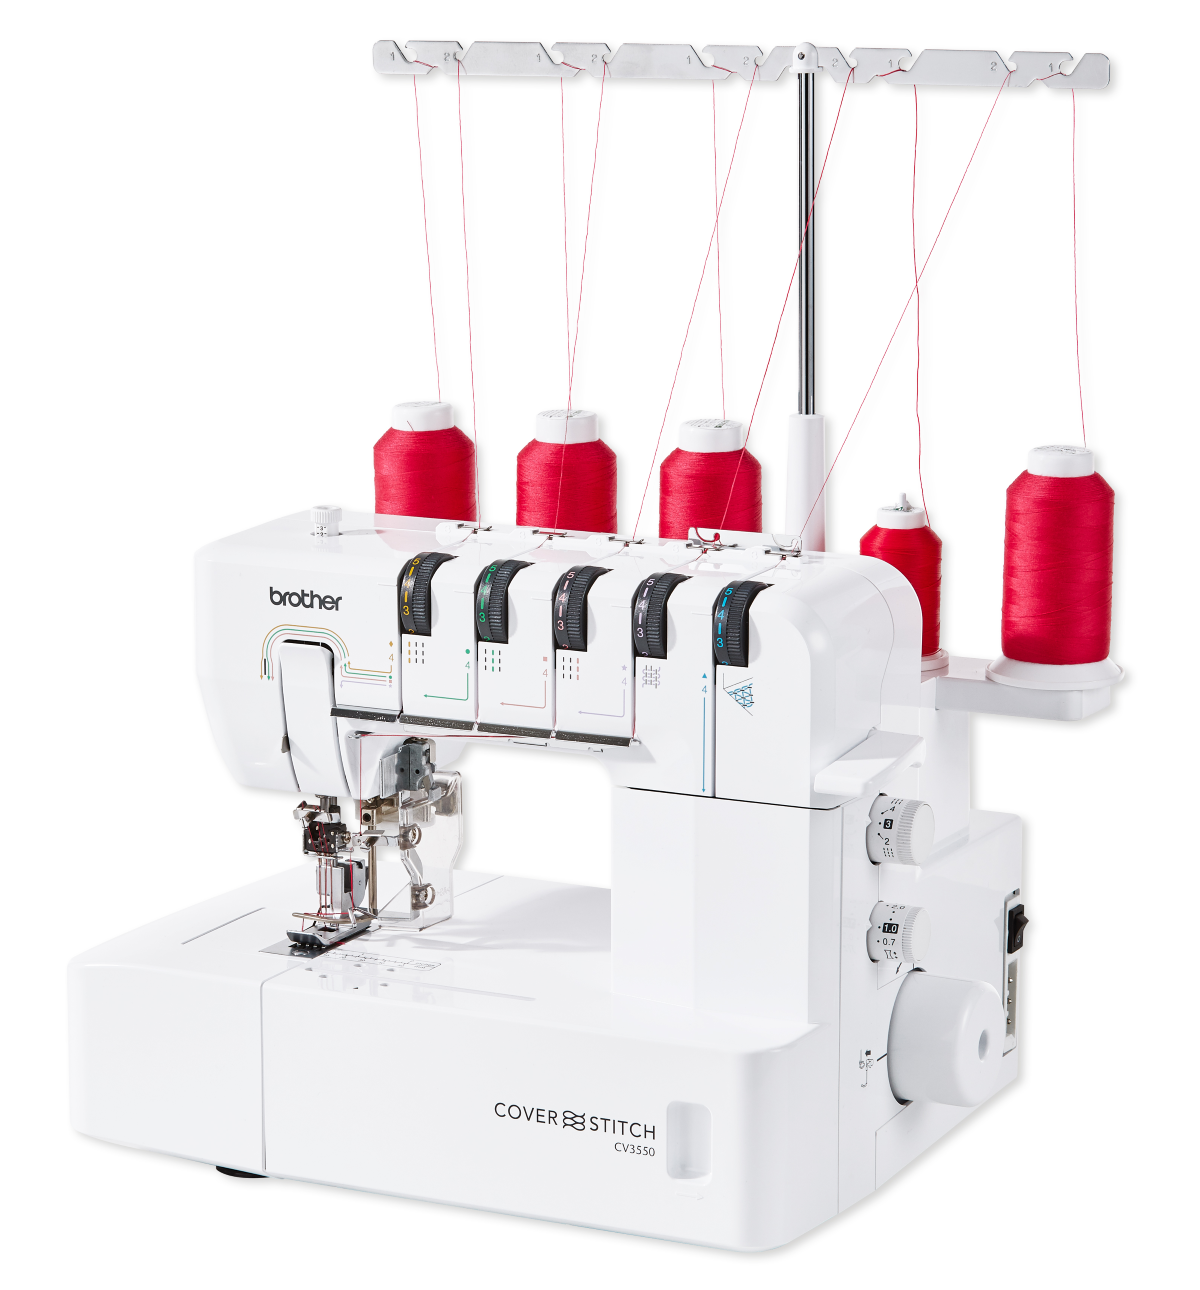 brother cv3550 coverstitch sewing machine